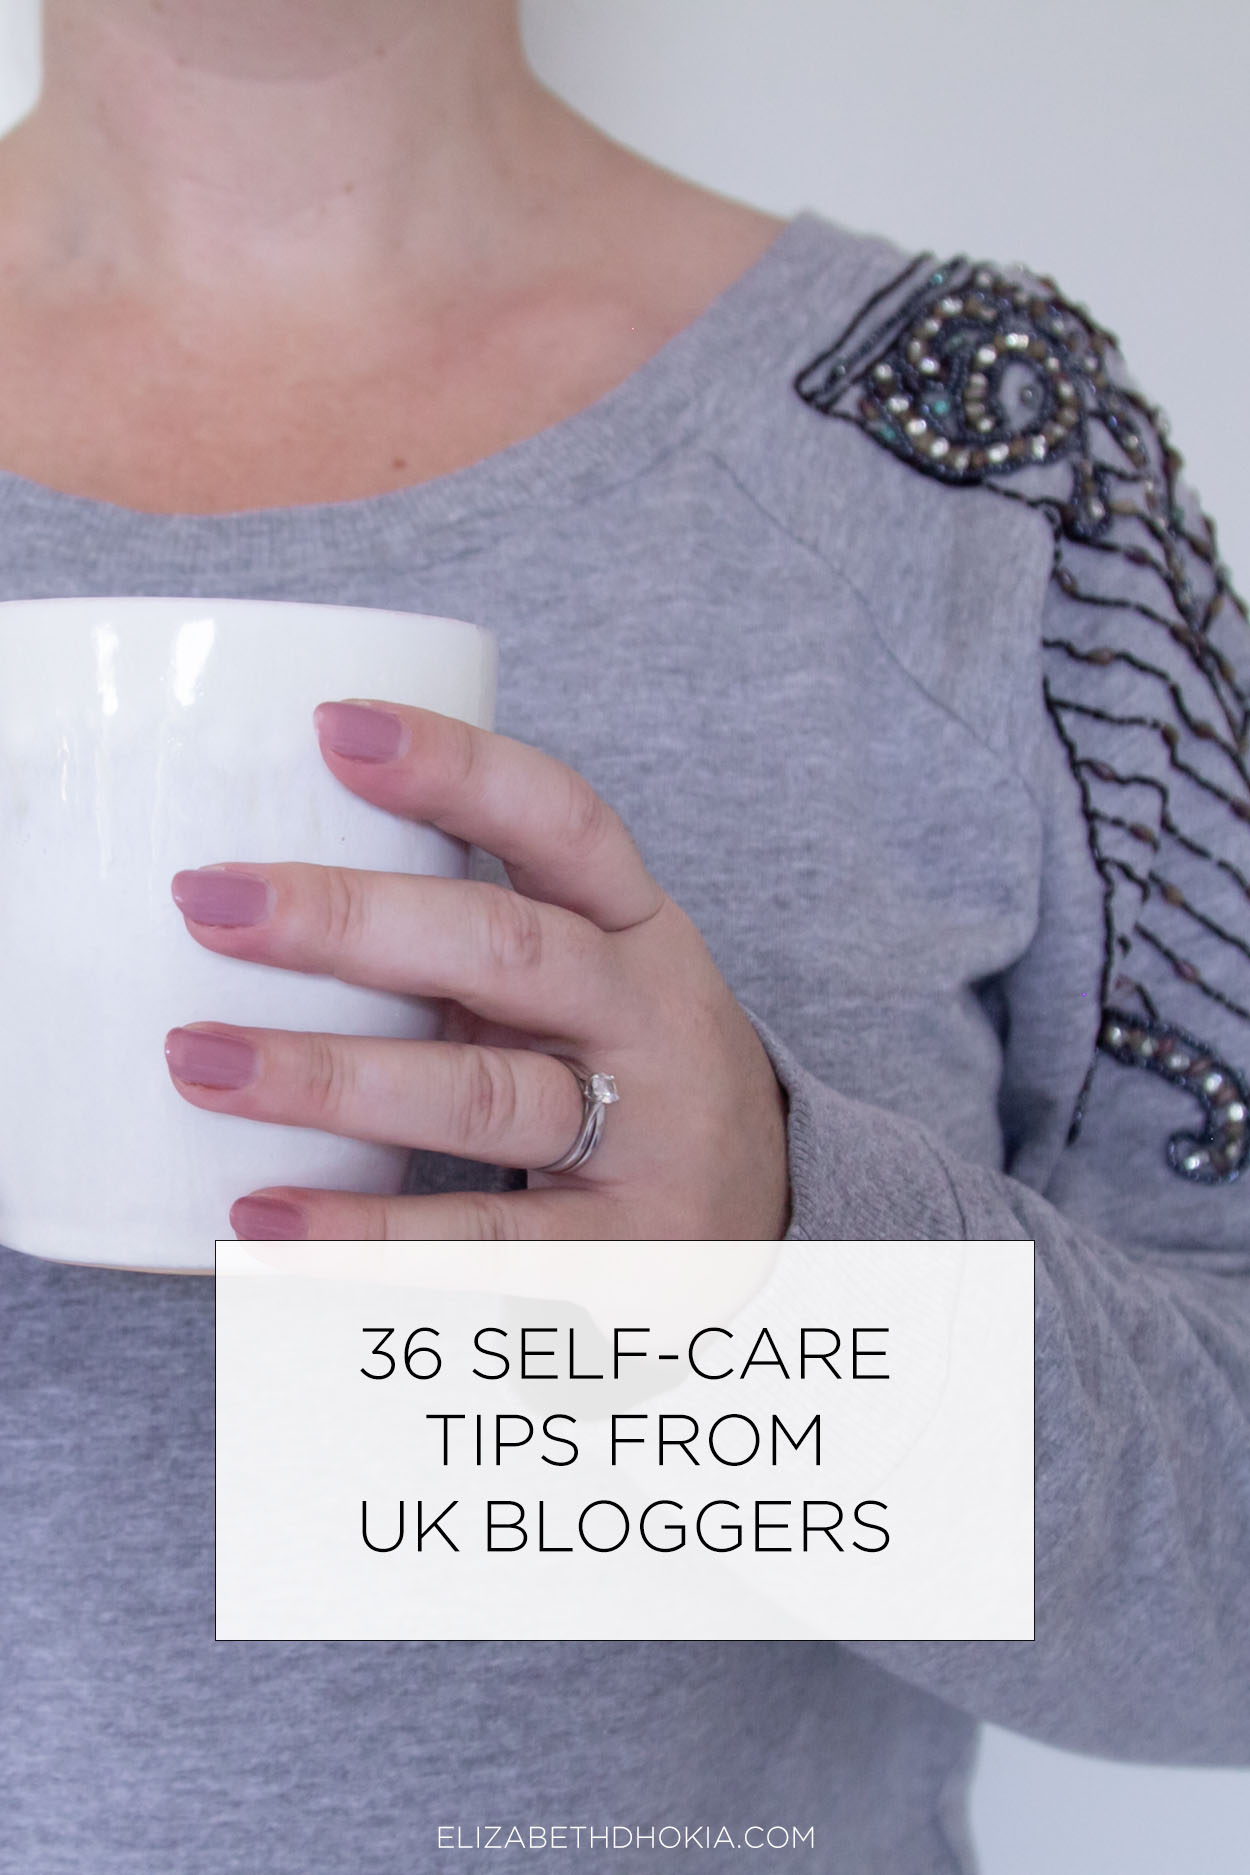 36 SelfCare Tips